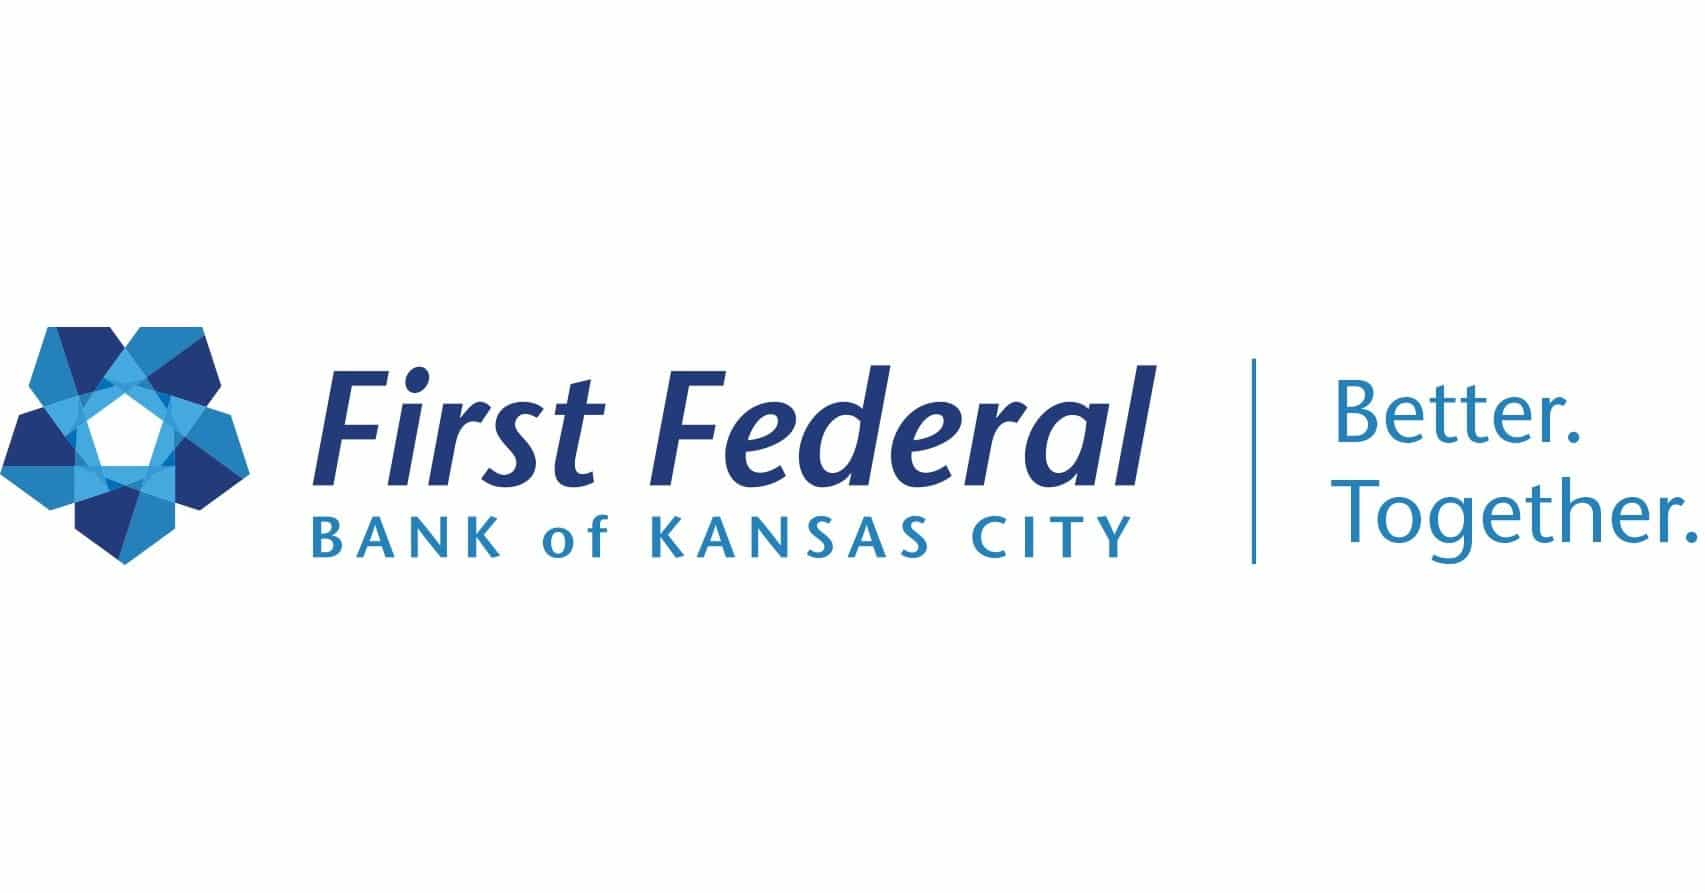 First Federal Bank of Kansas City Joins with Narmi to Deliver World Class Digital Banking and Account Opening Experience